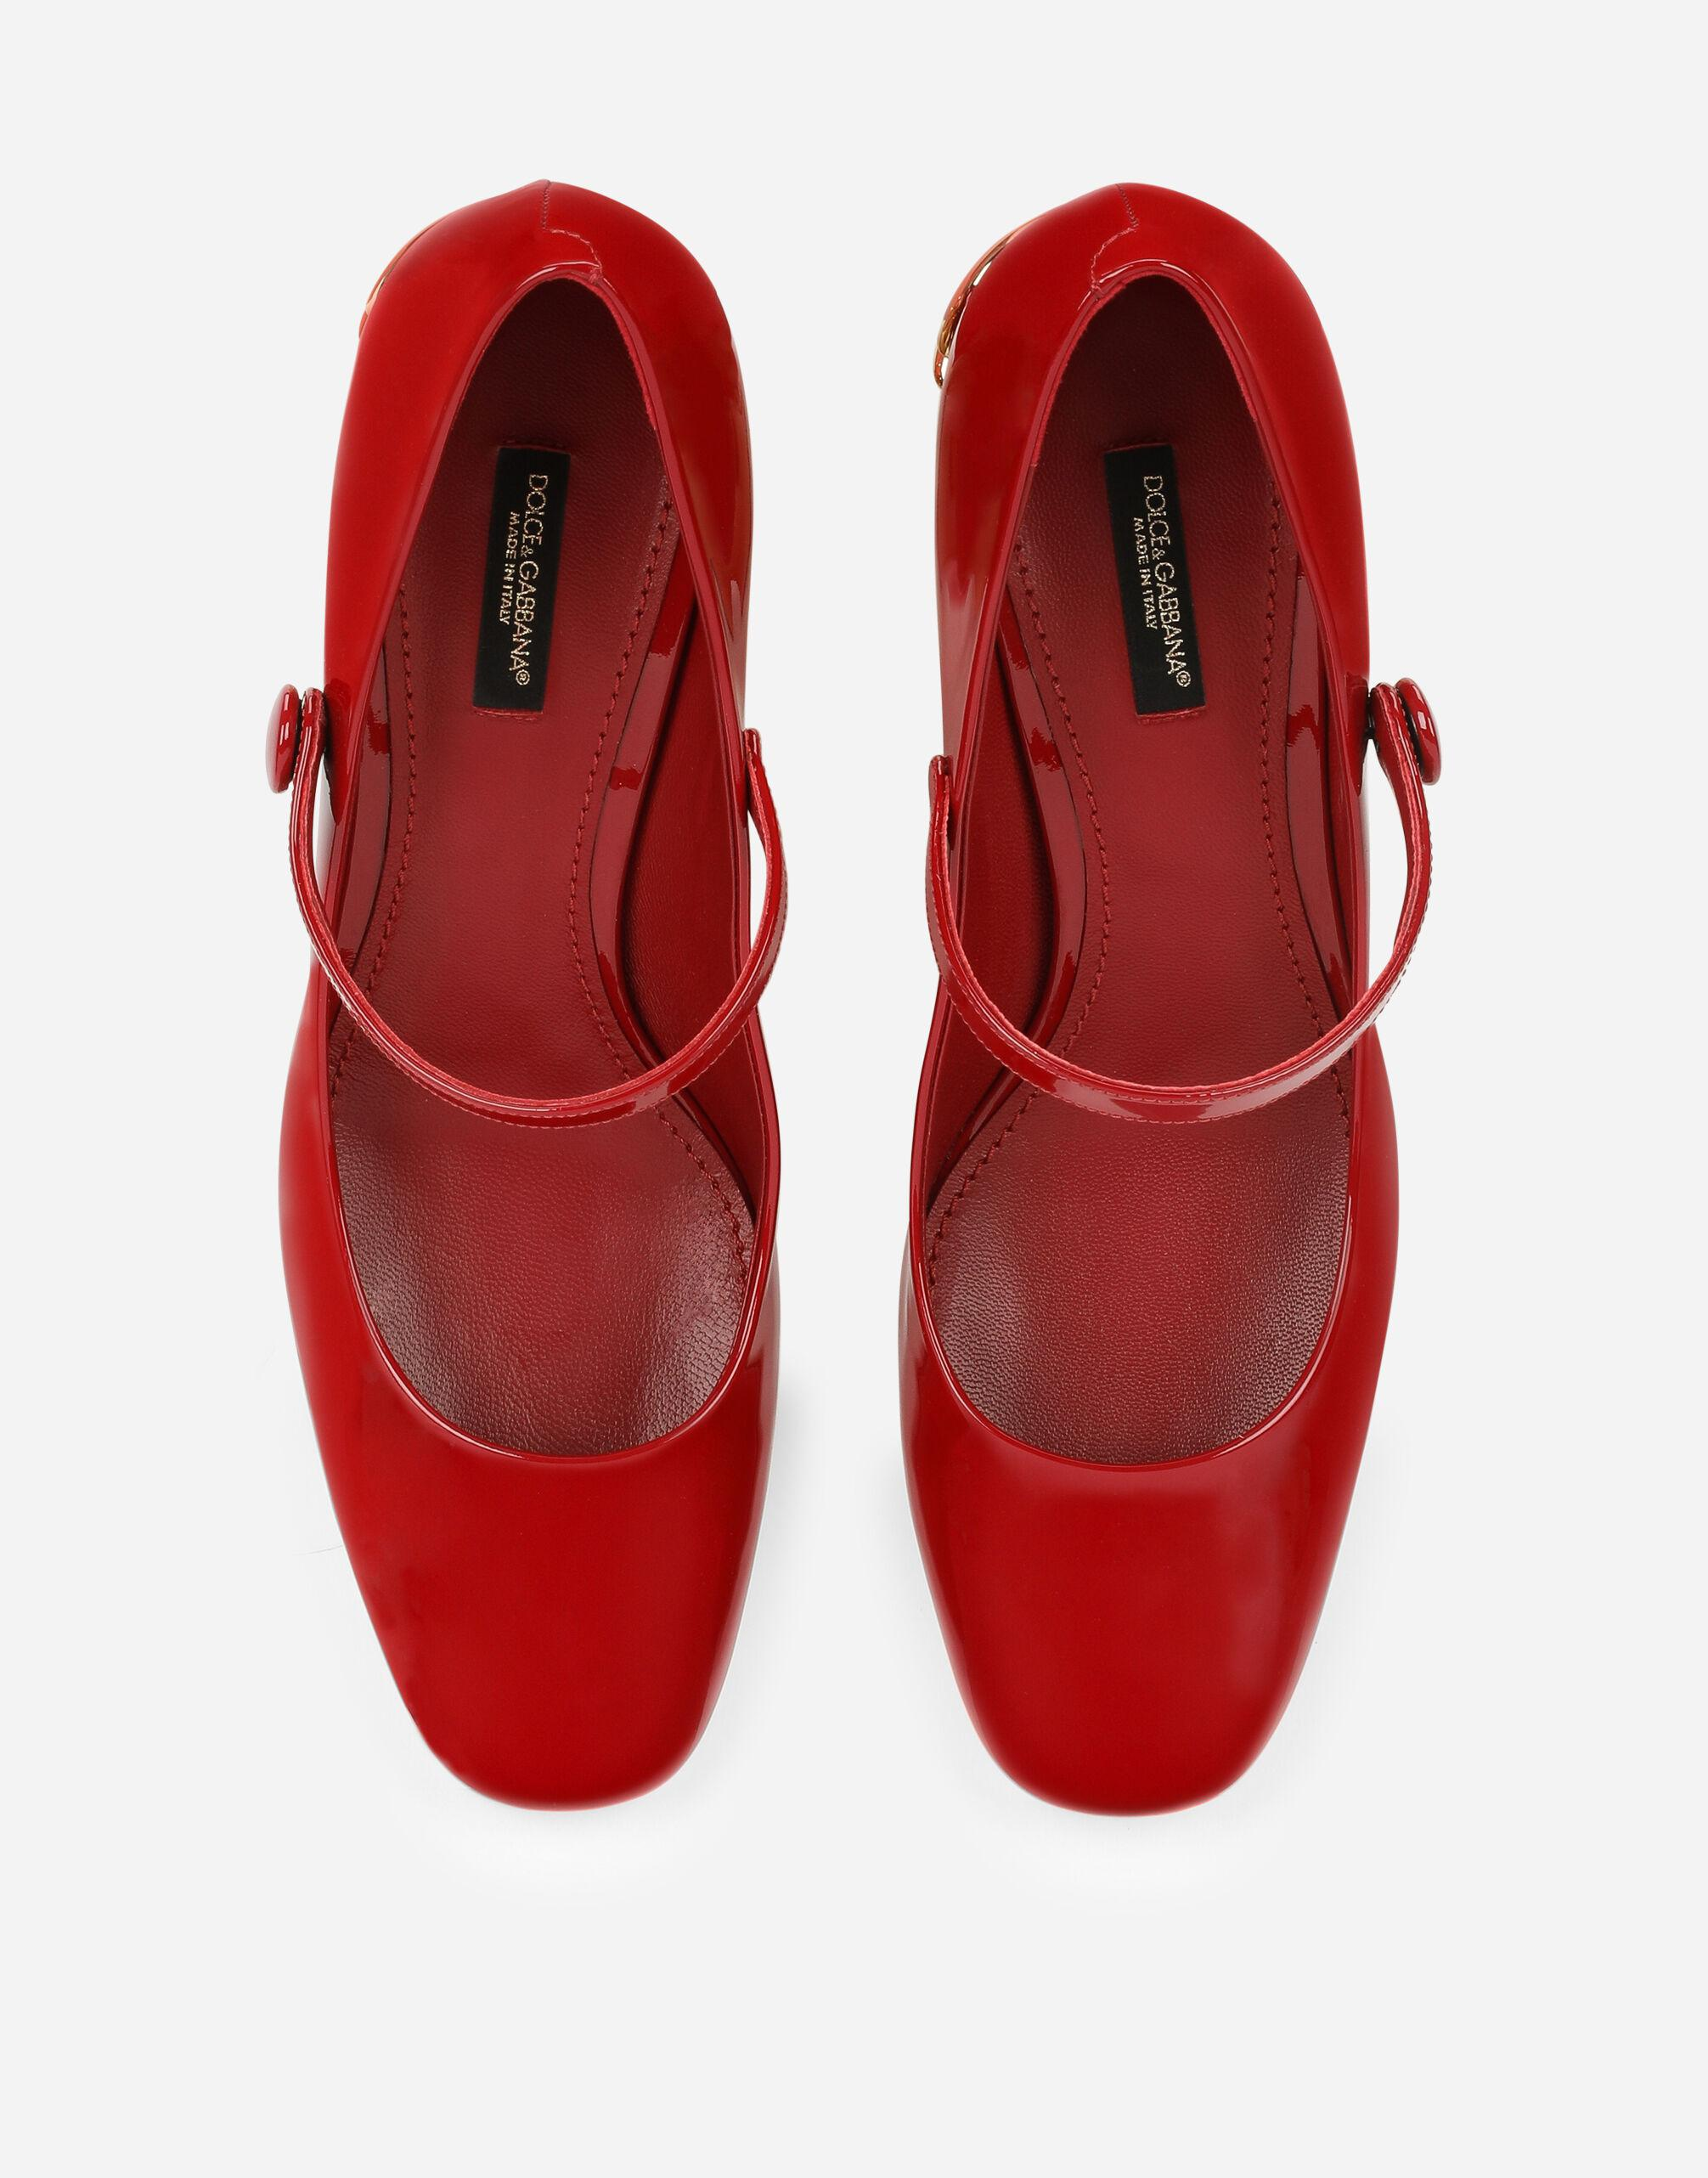 Patent leather Mary Janes with DG Karol heel 3